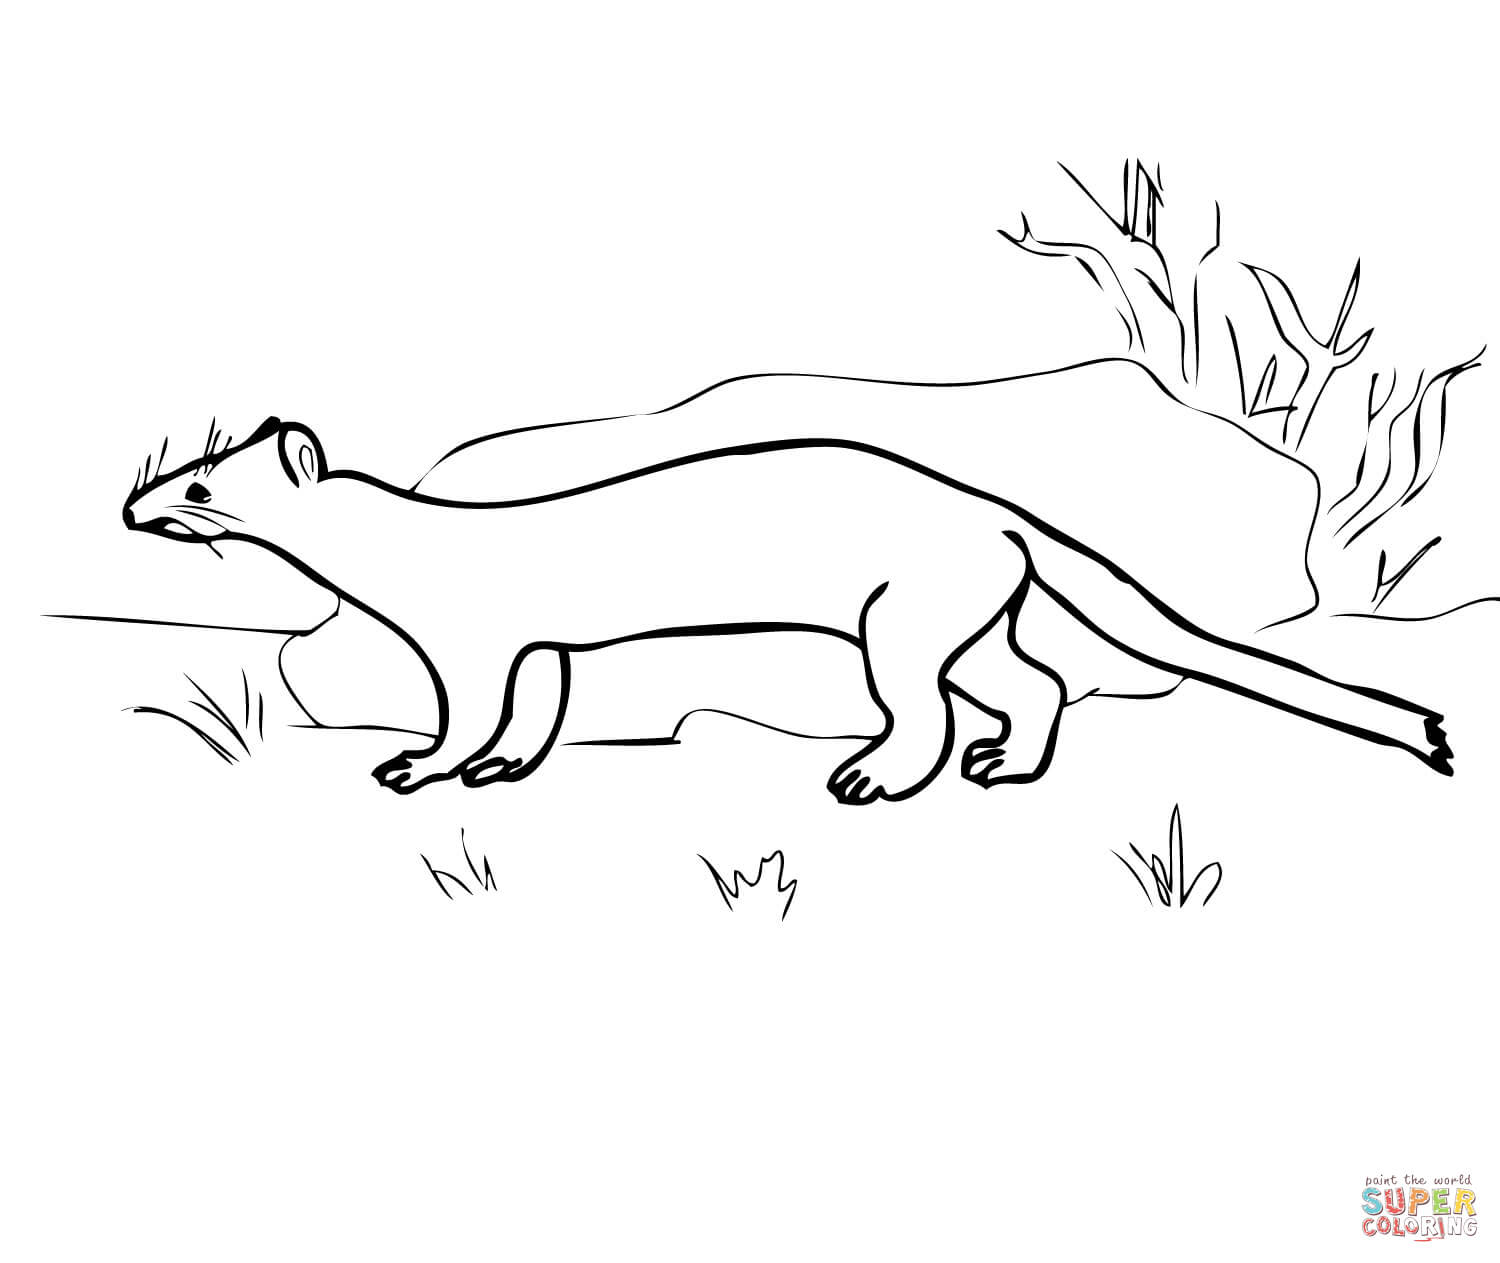 Stoat coloring #14, Download drawings